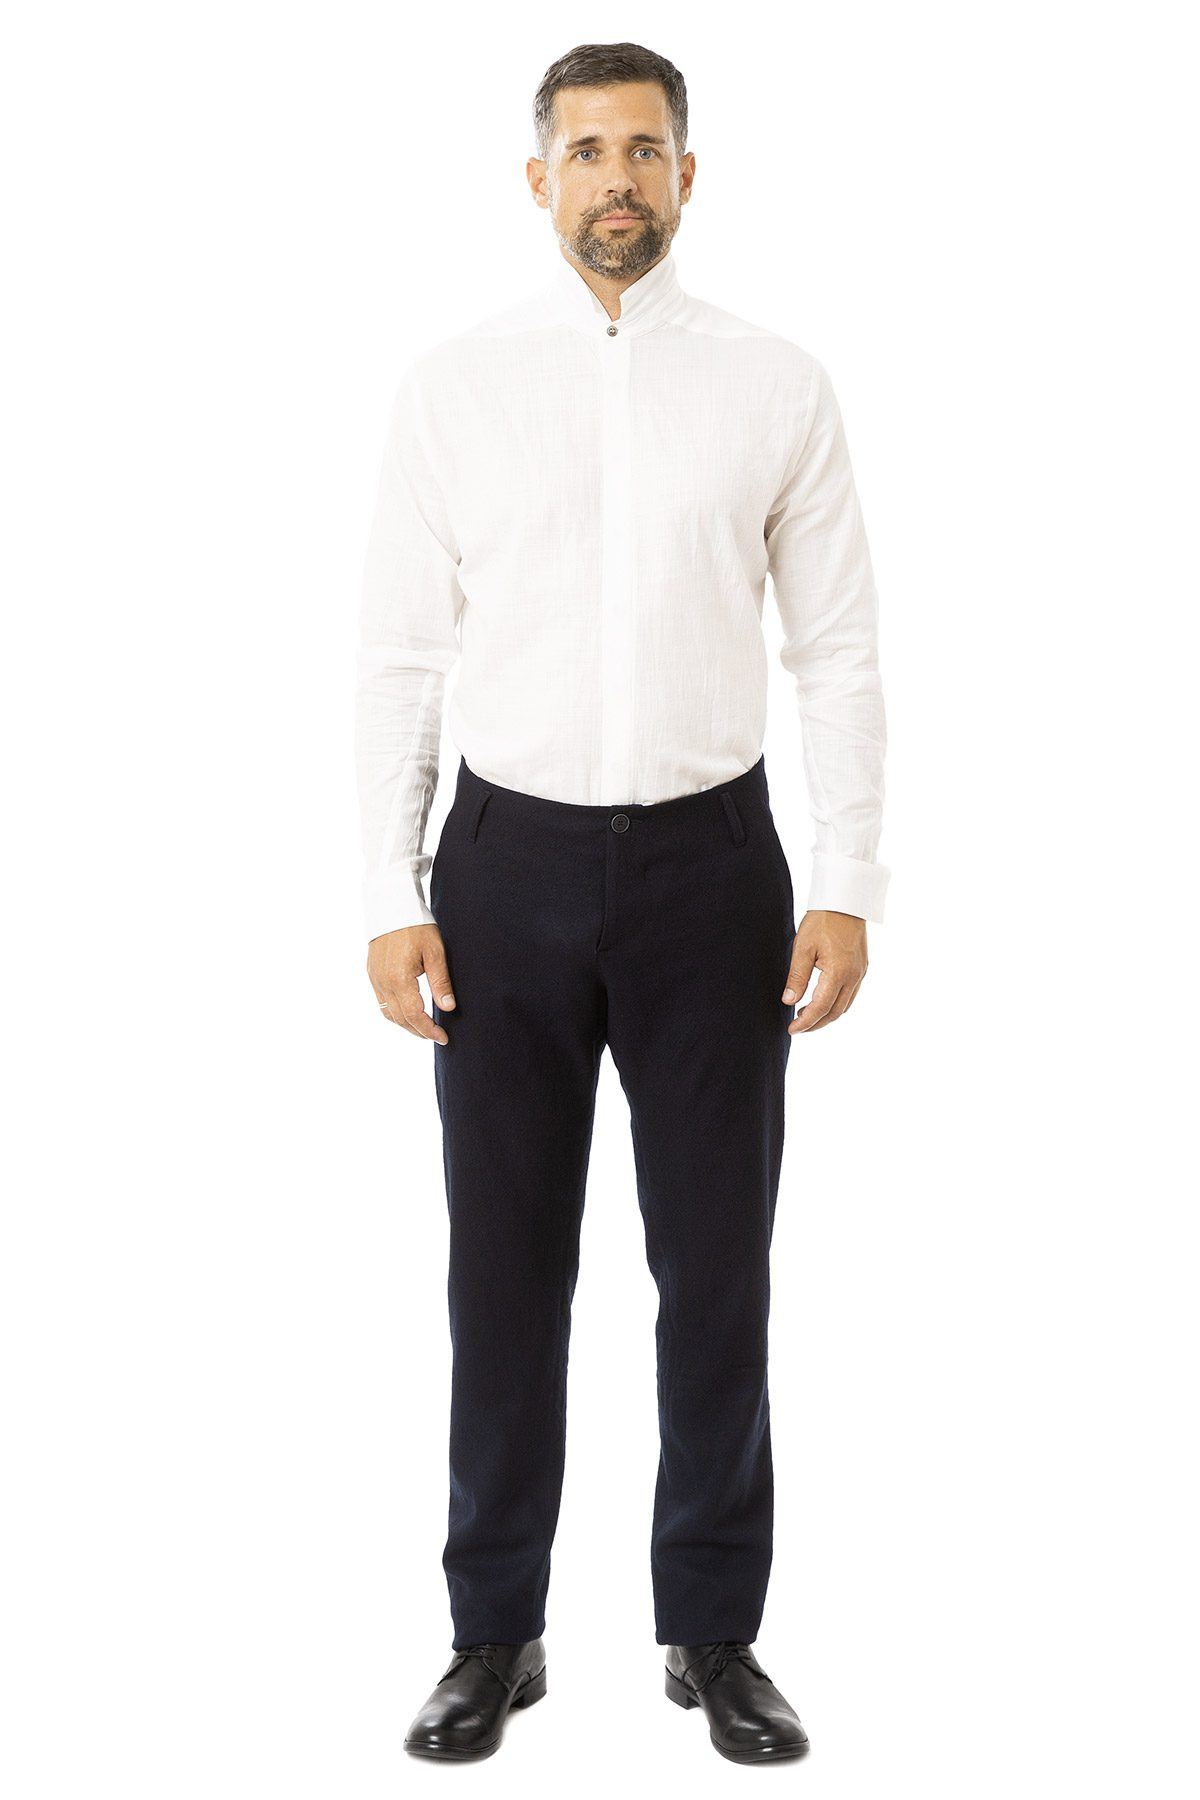 hannibal aw19 trousers hose hektor marine dunkelblau front